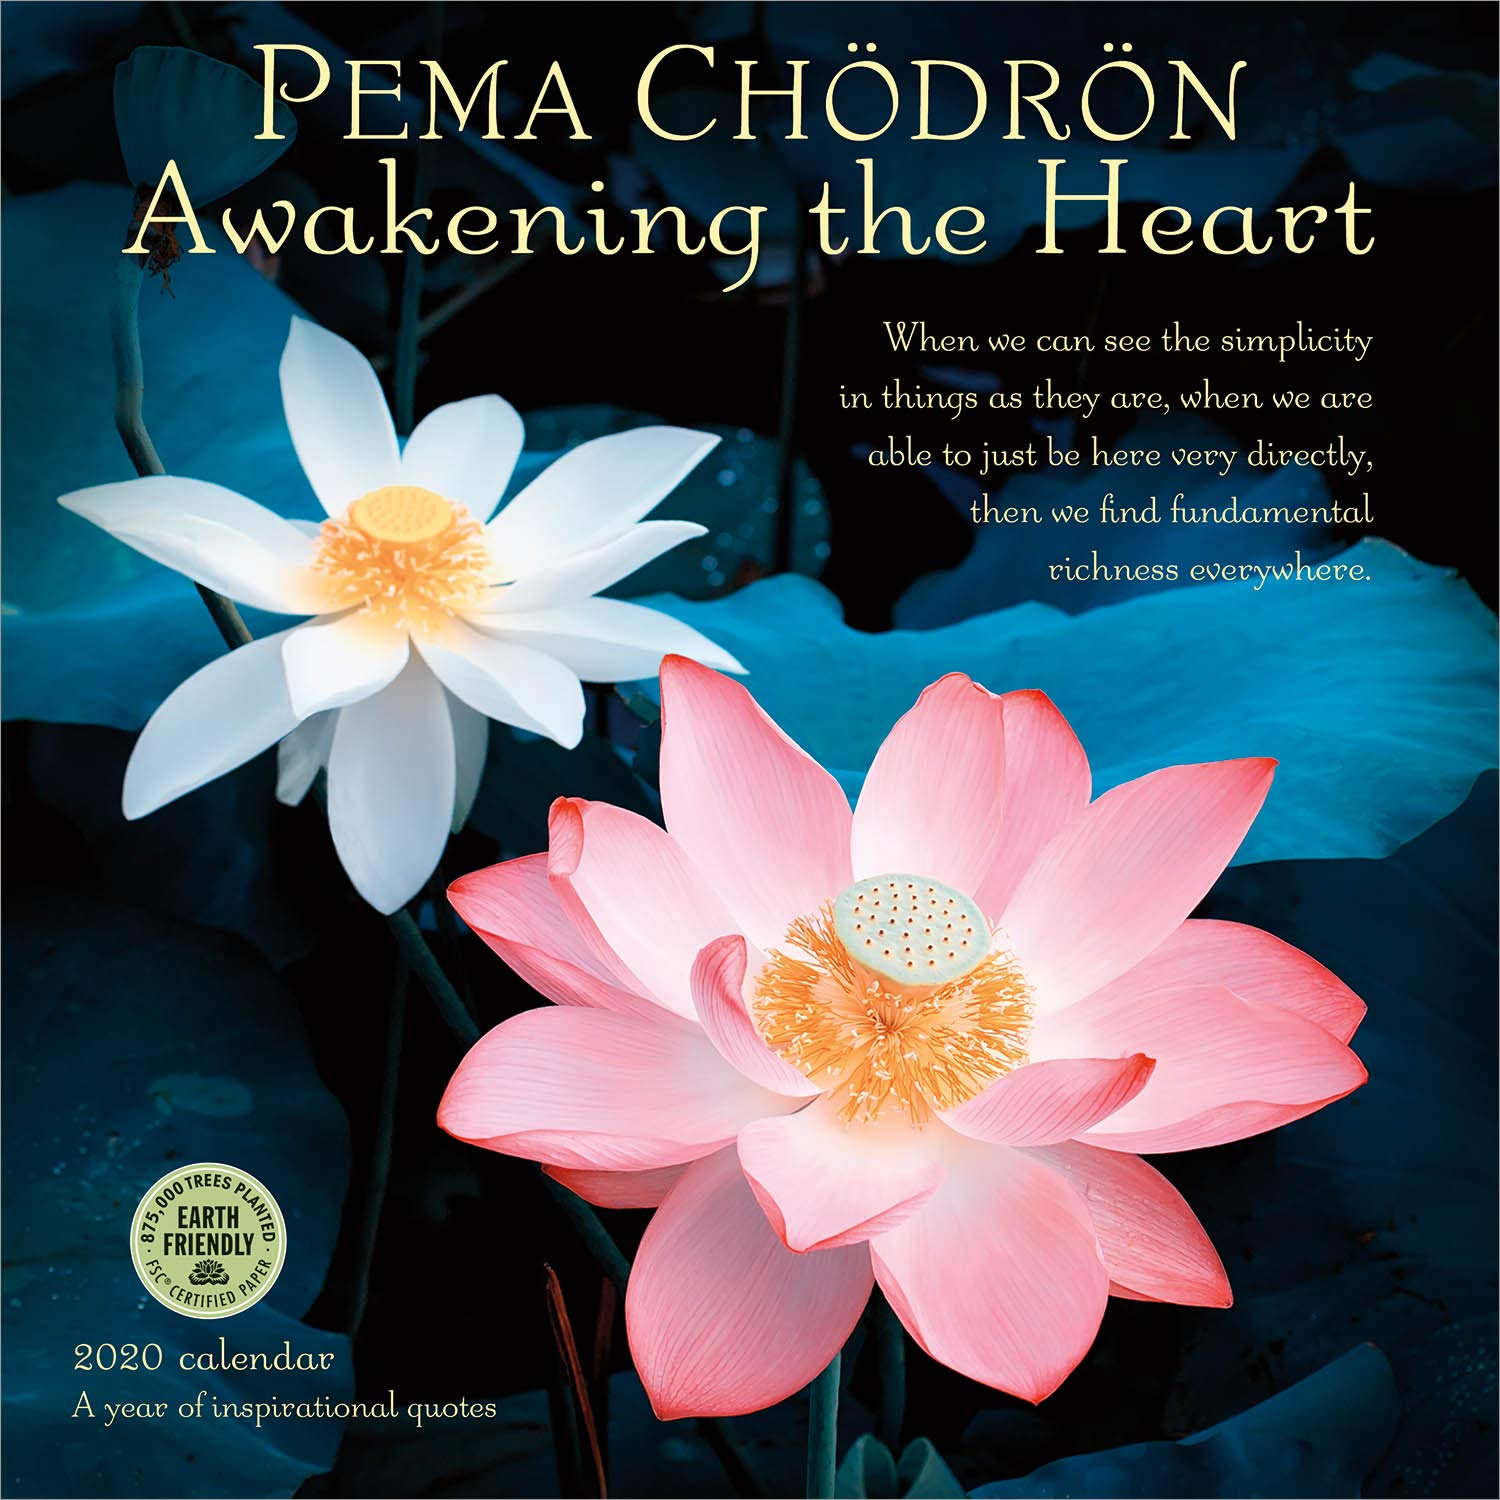 Pema Chodron 2020 Wall Calendar: Awakening the Heart - A Year of Inspirational Quotes by Amber Lotus Publishing